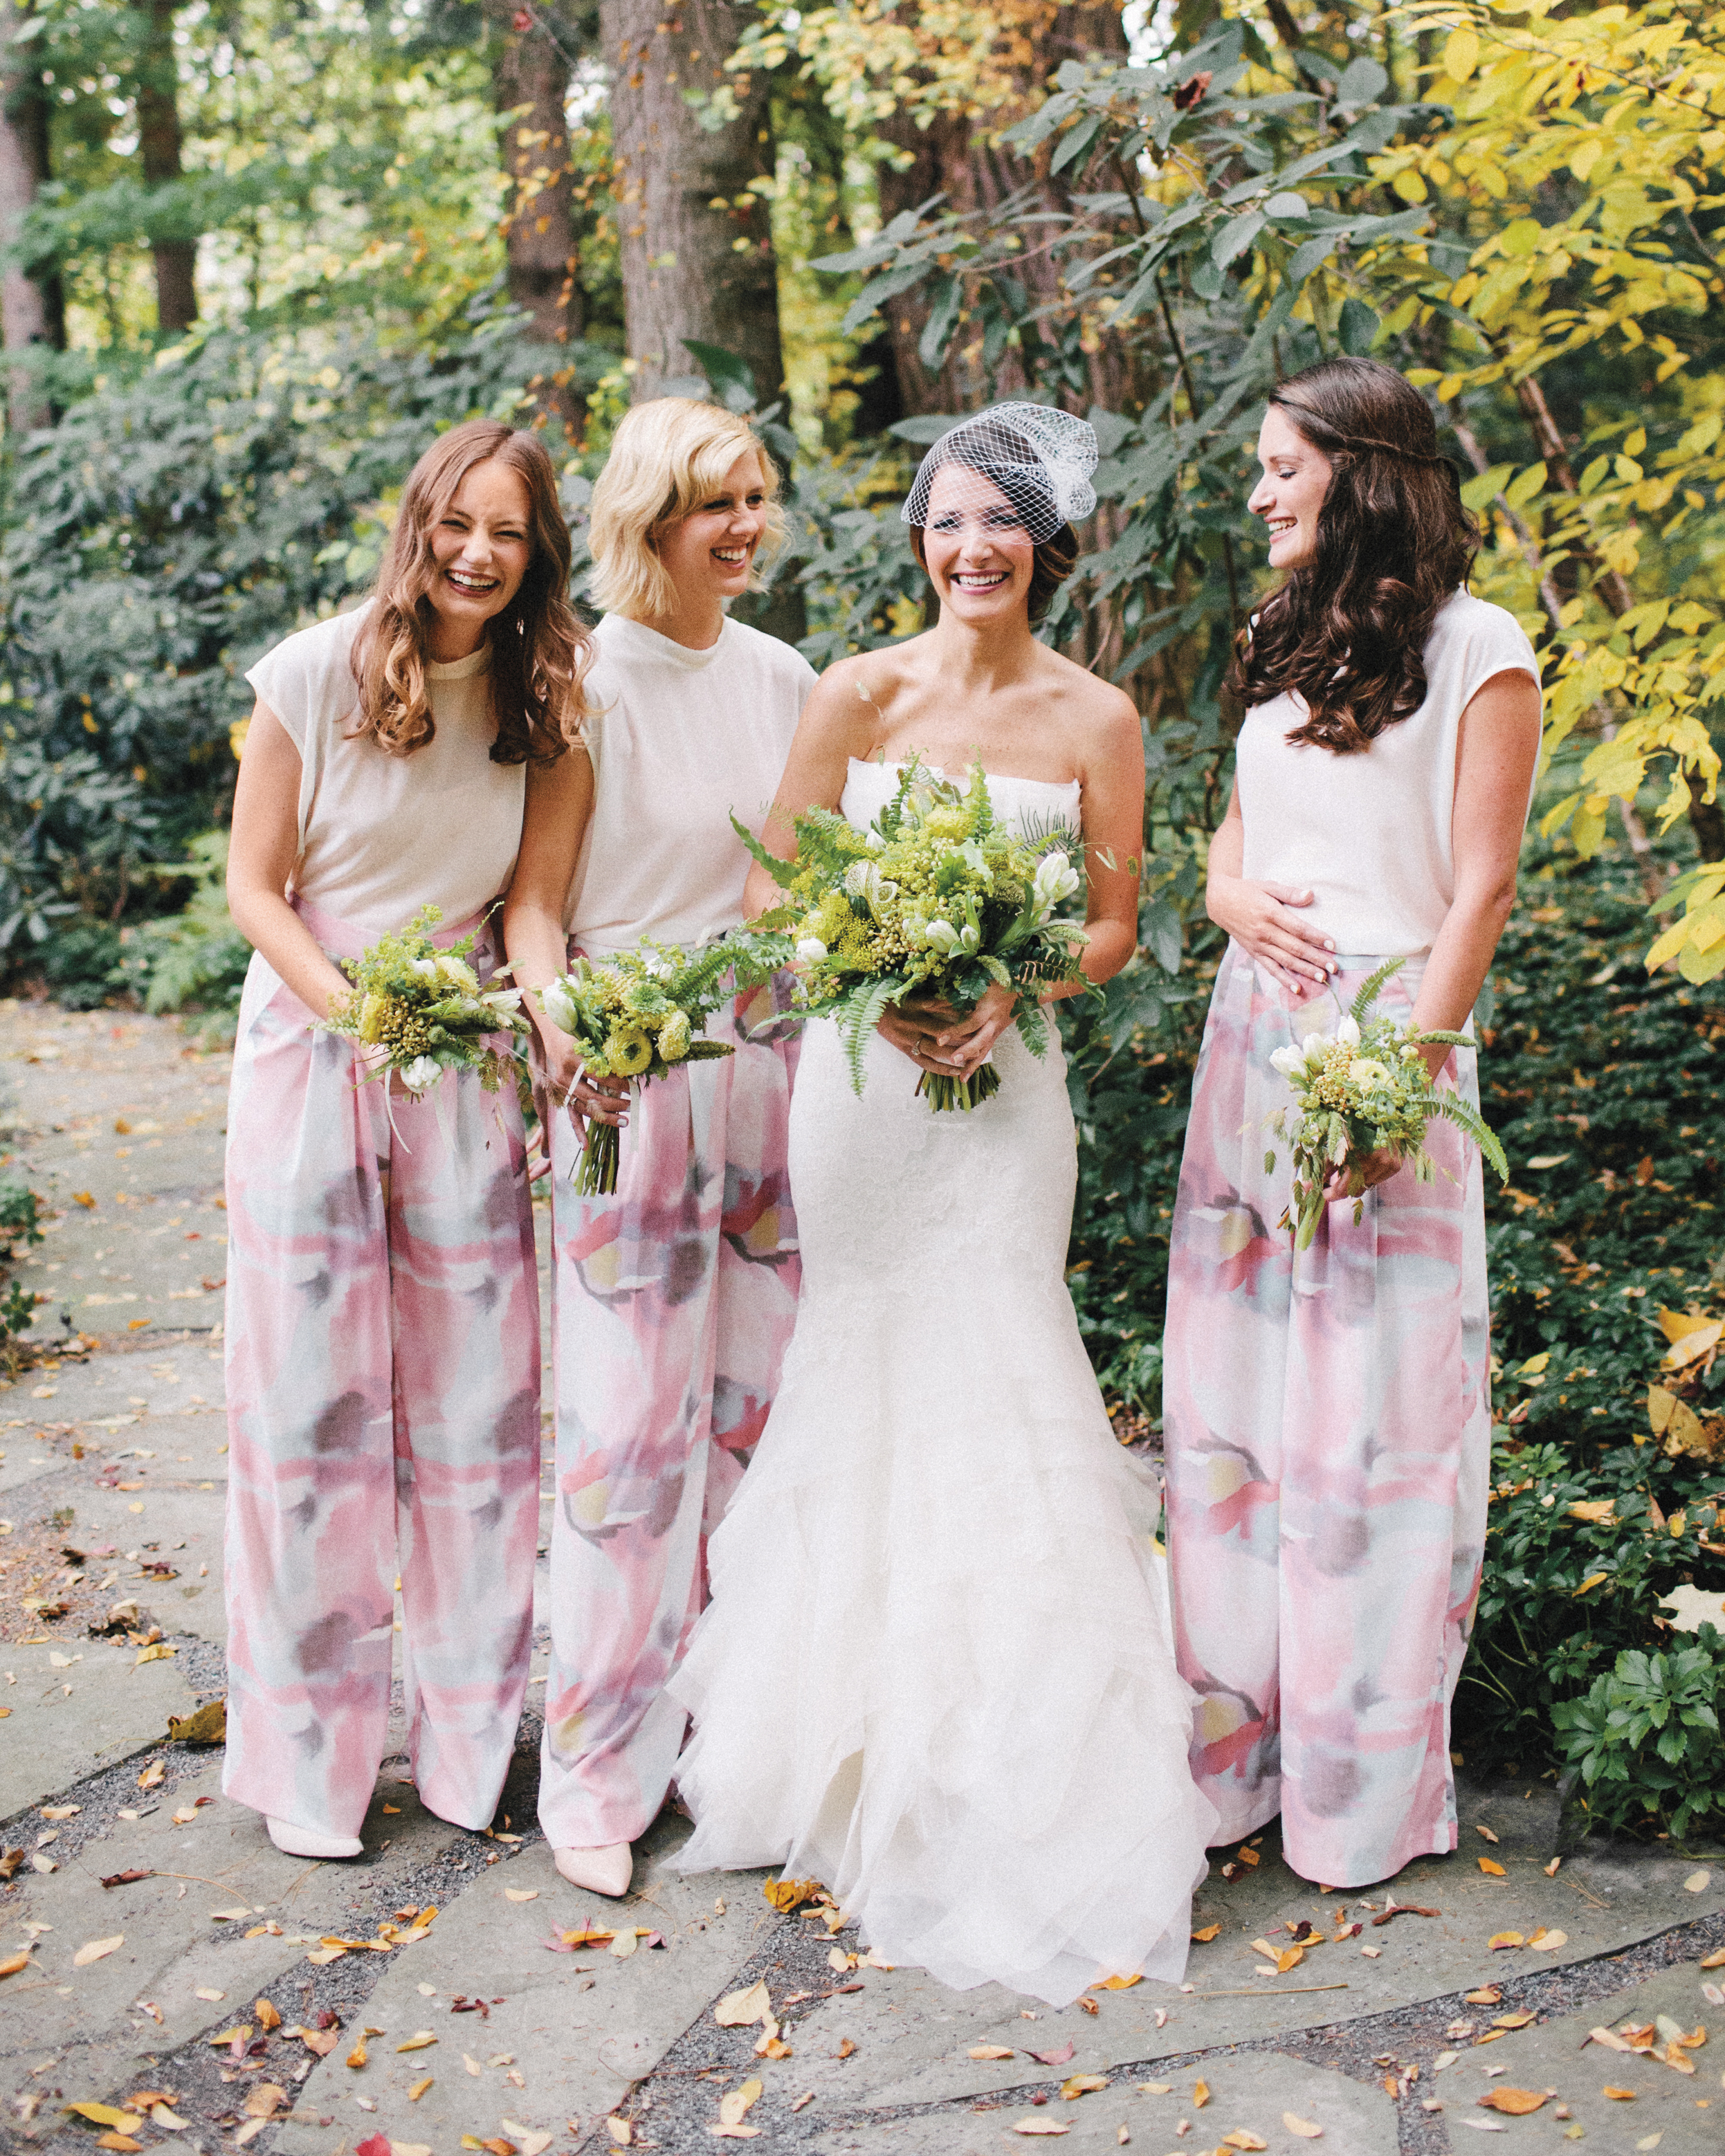 lr-chelsa-dennis-wed-bride-bridesmaids-154-ds111142.jpg